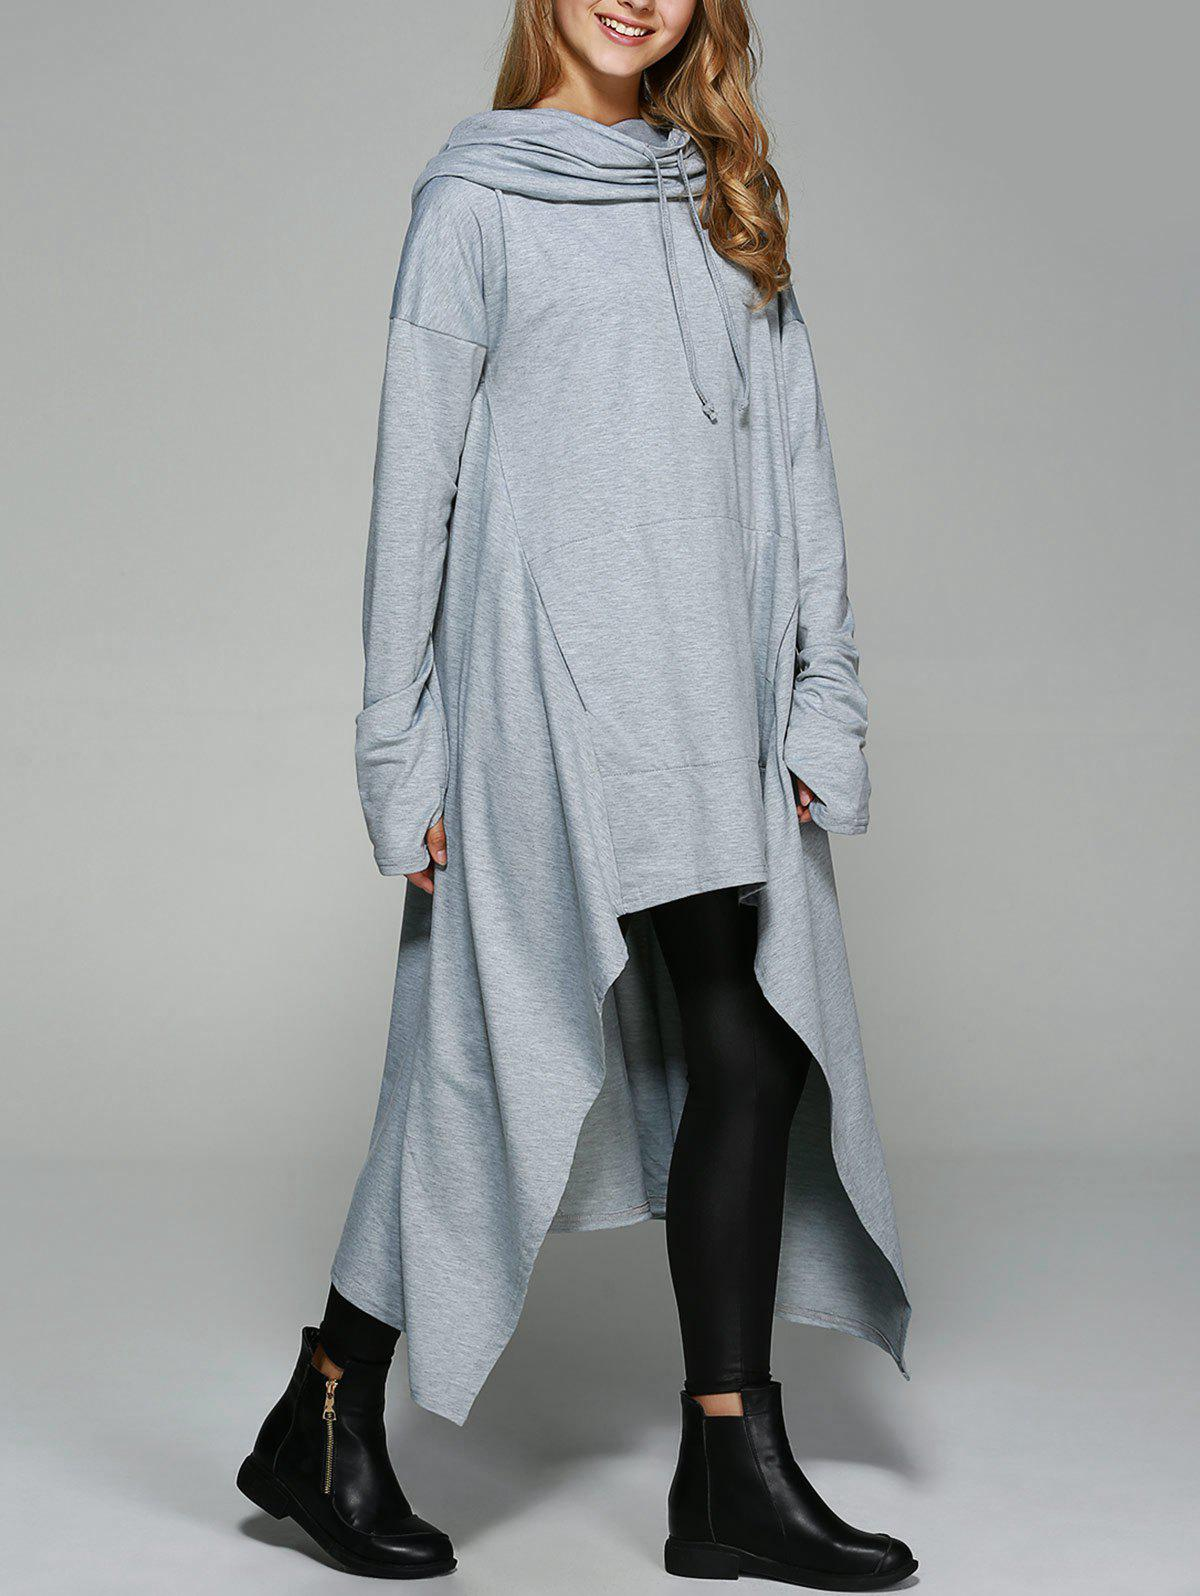 Asymmetrical Pocket Design Loose-Fitting Neck Hoodie - LIGHT GRAY L